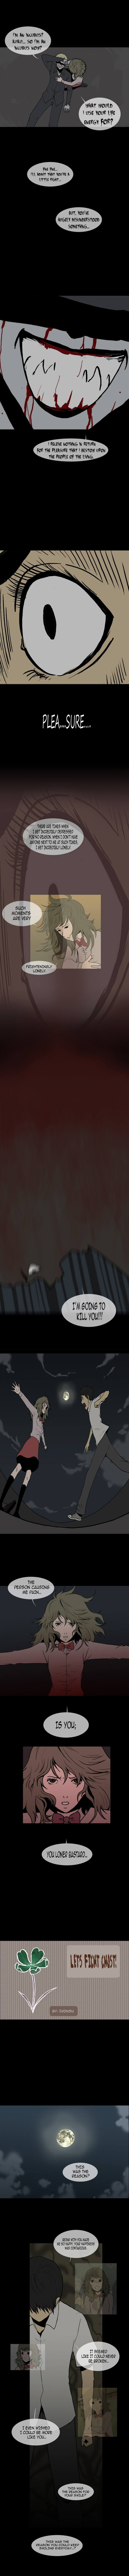 Let's Fight Ghost 41 Page 3